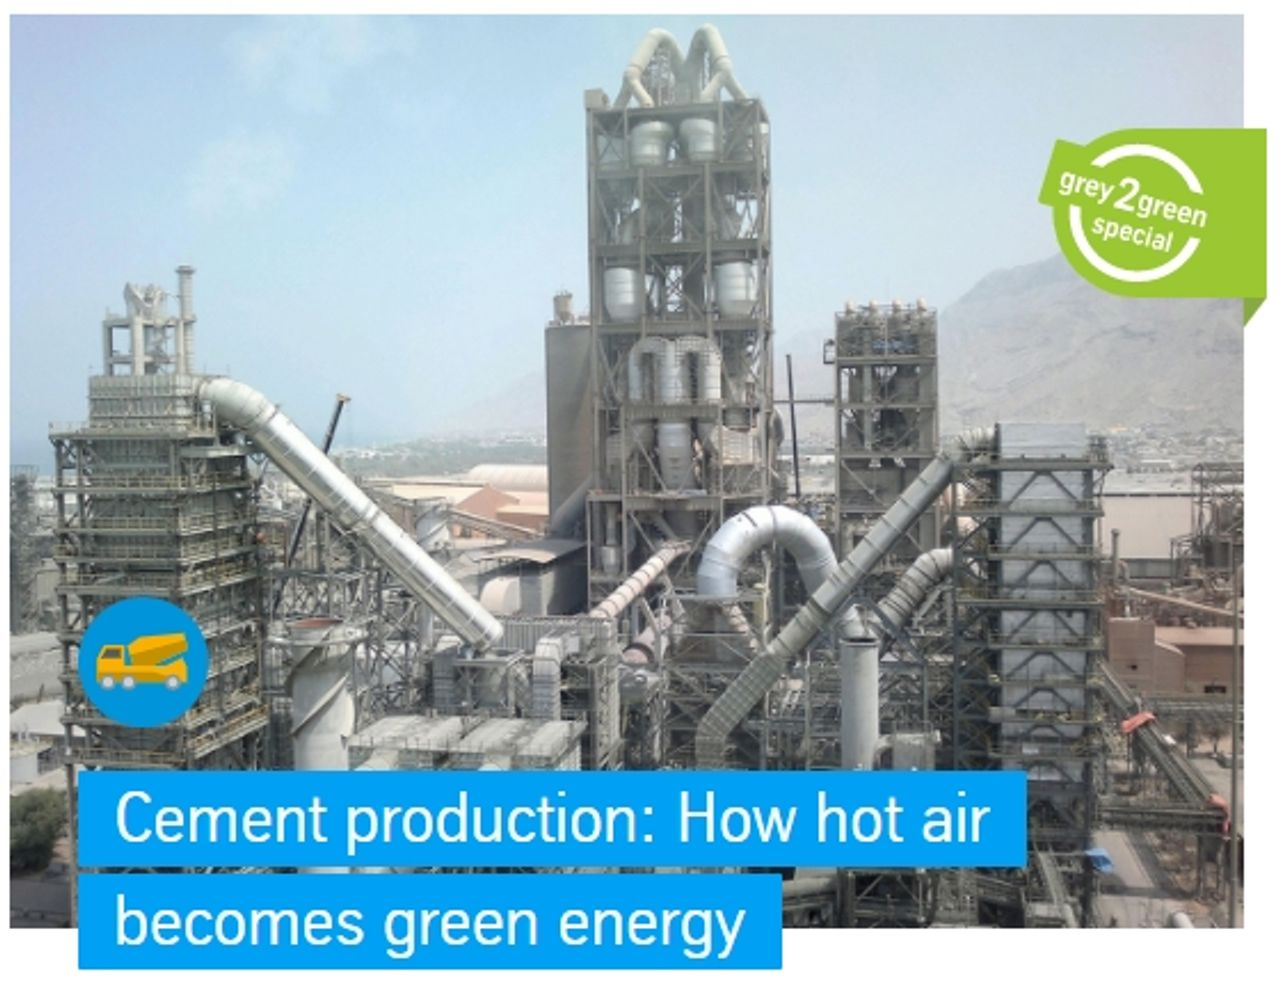 In the production of cement, raw materials such as limestone, clay, sand and iron ore are burned at more than 1,400 °C to form clinker and then ground with gypsum to produce the finished cement. The air generated in the preheater or during cooling of the cement clinker, which can reach temperatures of up to 400 °C, is then often released unused into the environment. With thyssenkrupp's waste heat recovery systems, the waste heat from cement production can be used to generate electricity. For this purpose, steam is generated in boilers which then drives generators. This sustainable use of waste heat reduces environmental impact and lowers production costs of cement.